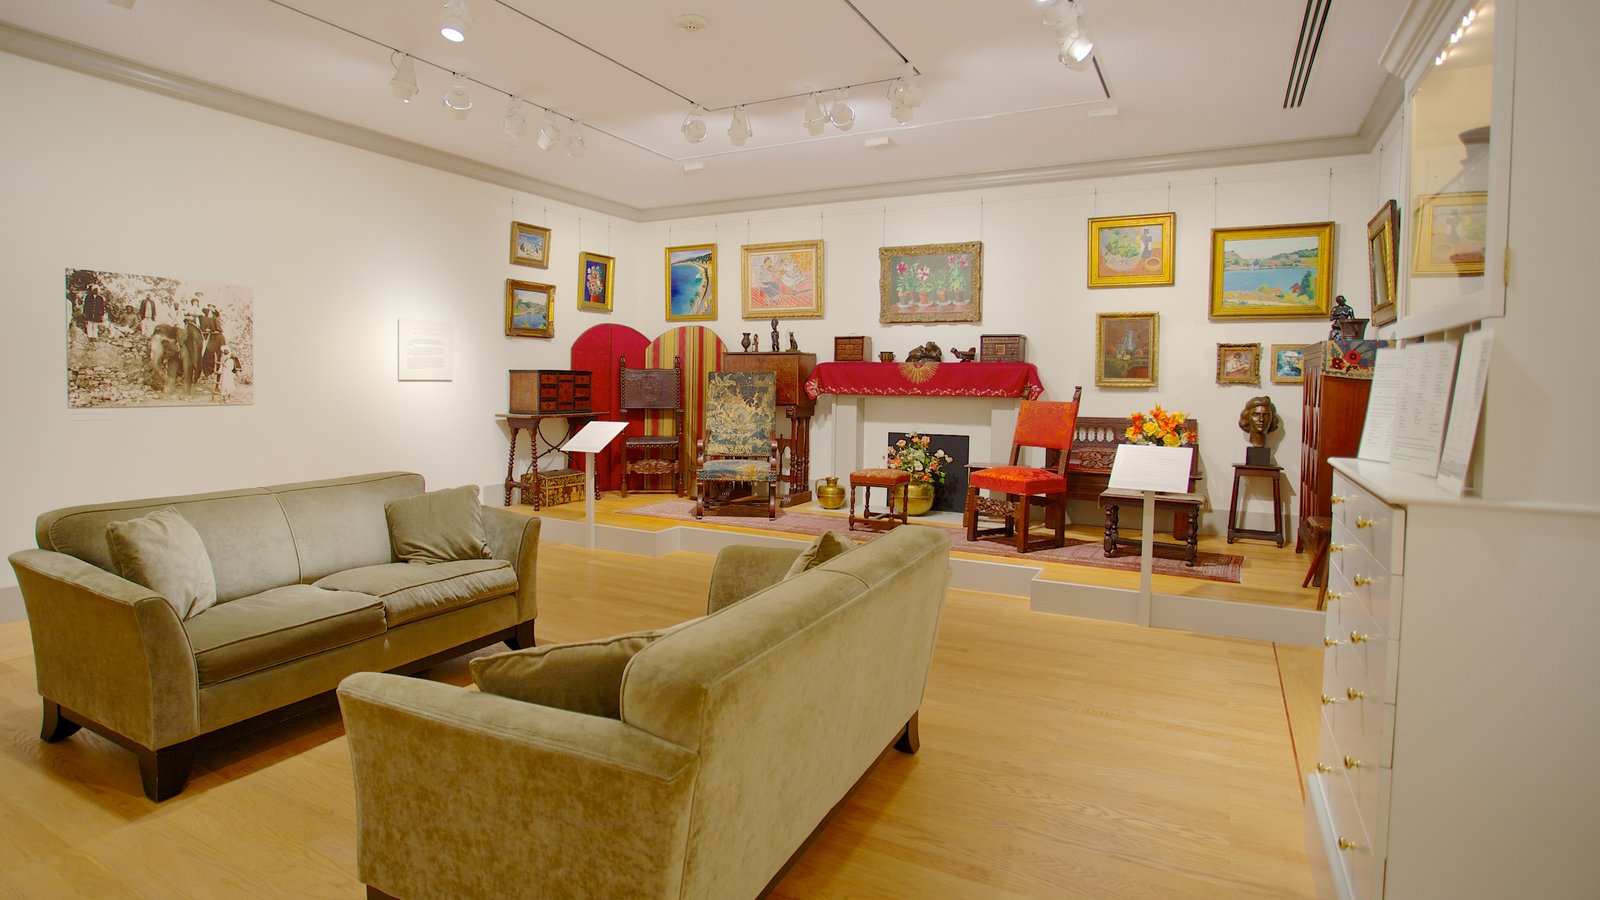 Baltimore Museum of Art which includes interior views and art